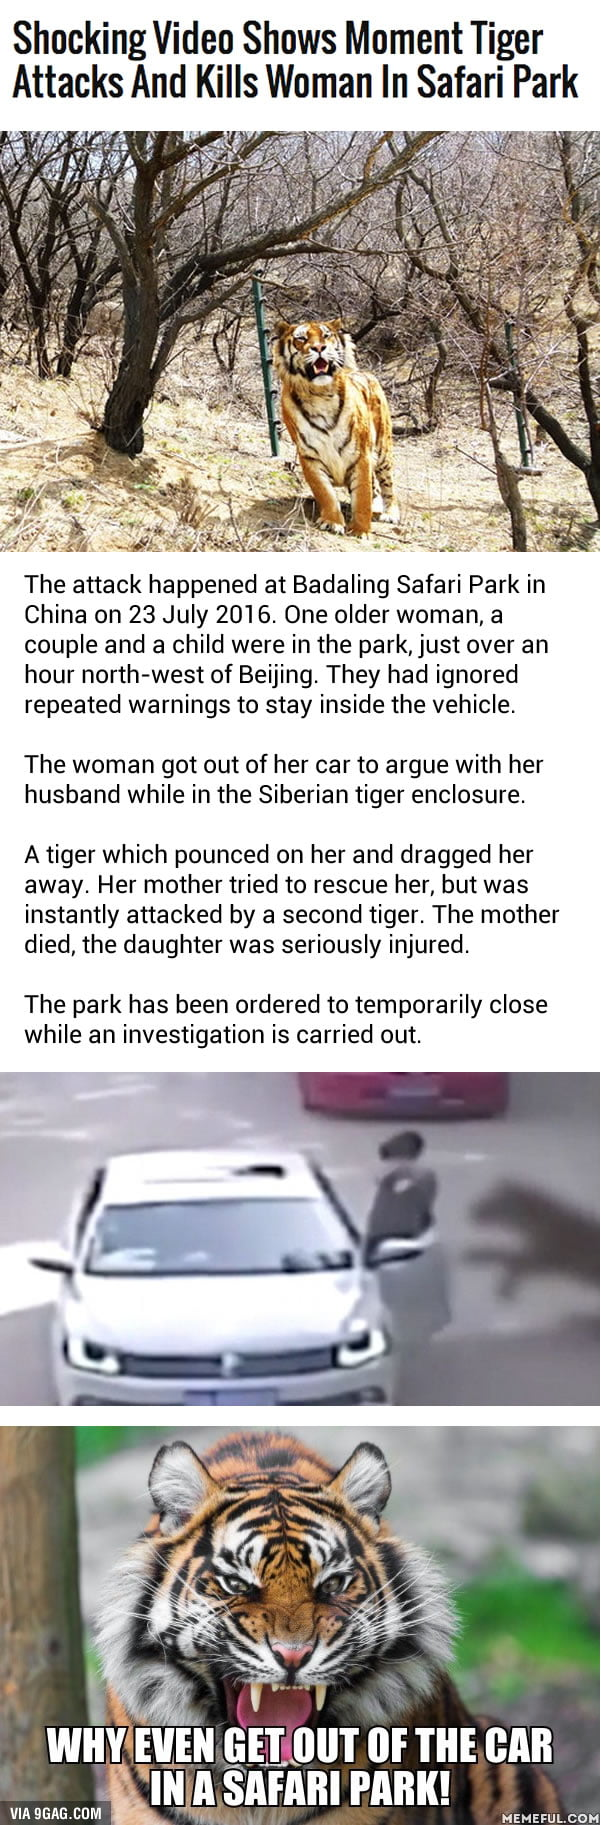 Woman mauled to death by a tiger after stepping out of car in a safari park in Beijing. What in the world were they thinking about!